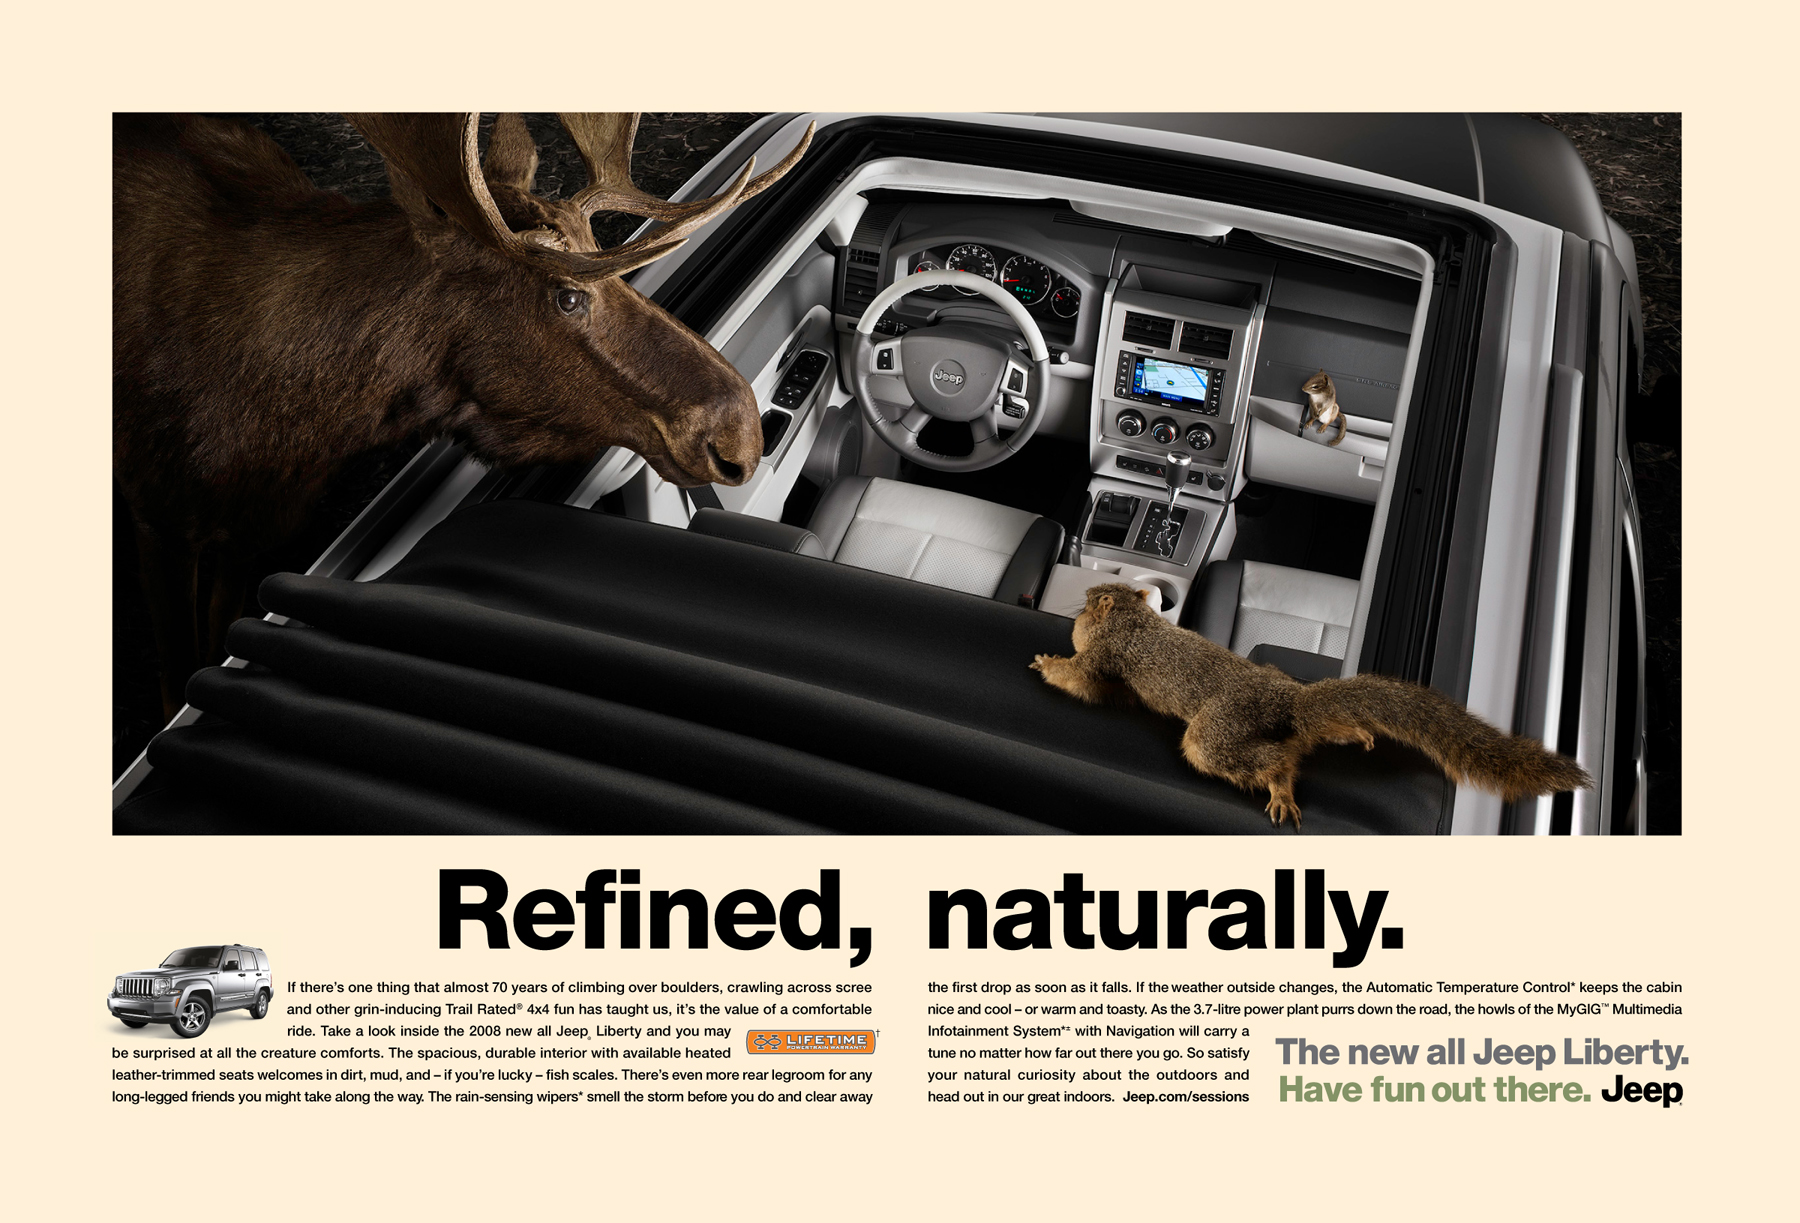 Jeep-Have-Fun-Out-There-Refined-Naturally